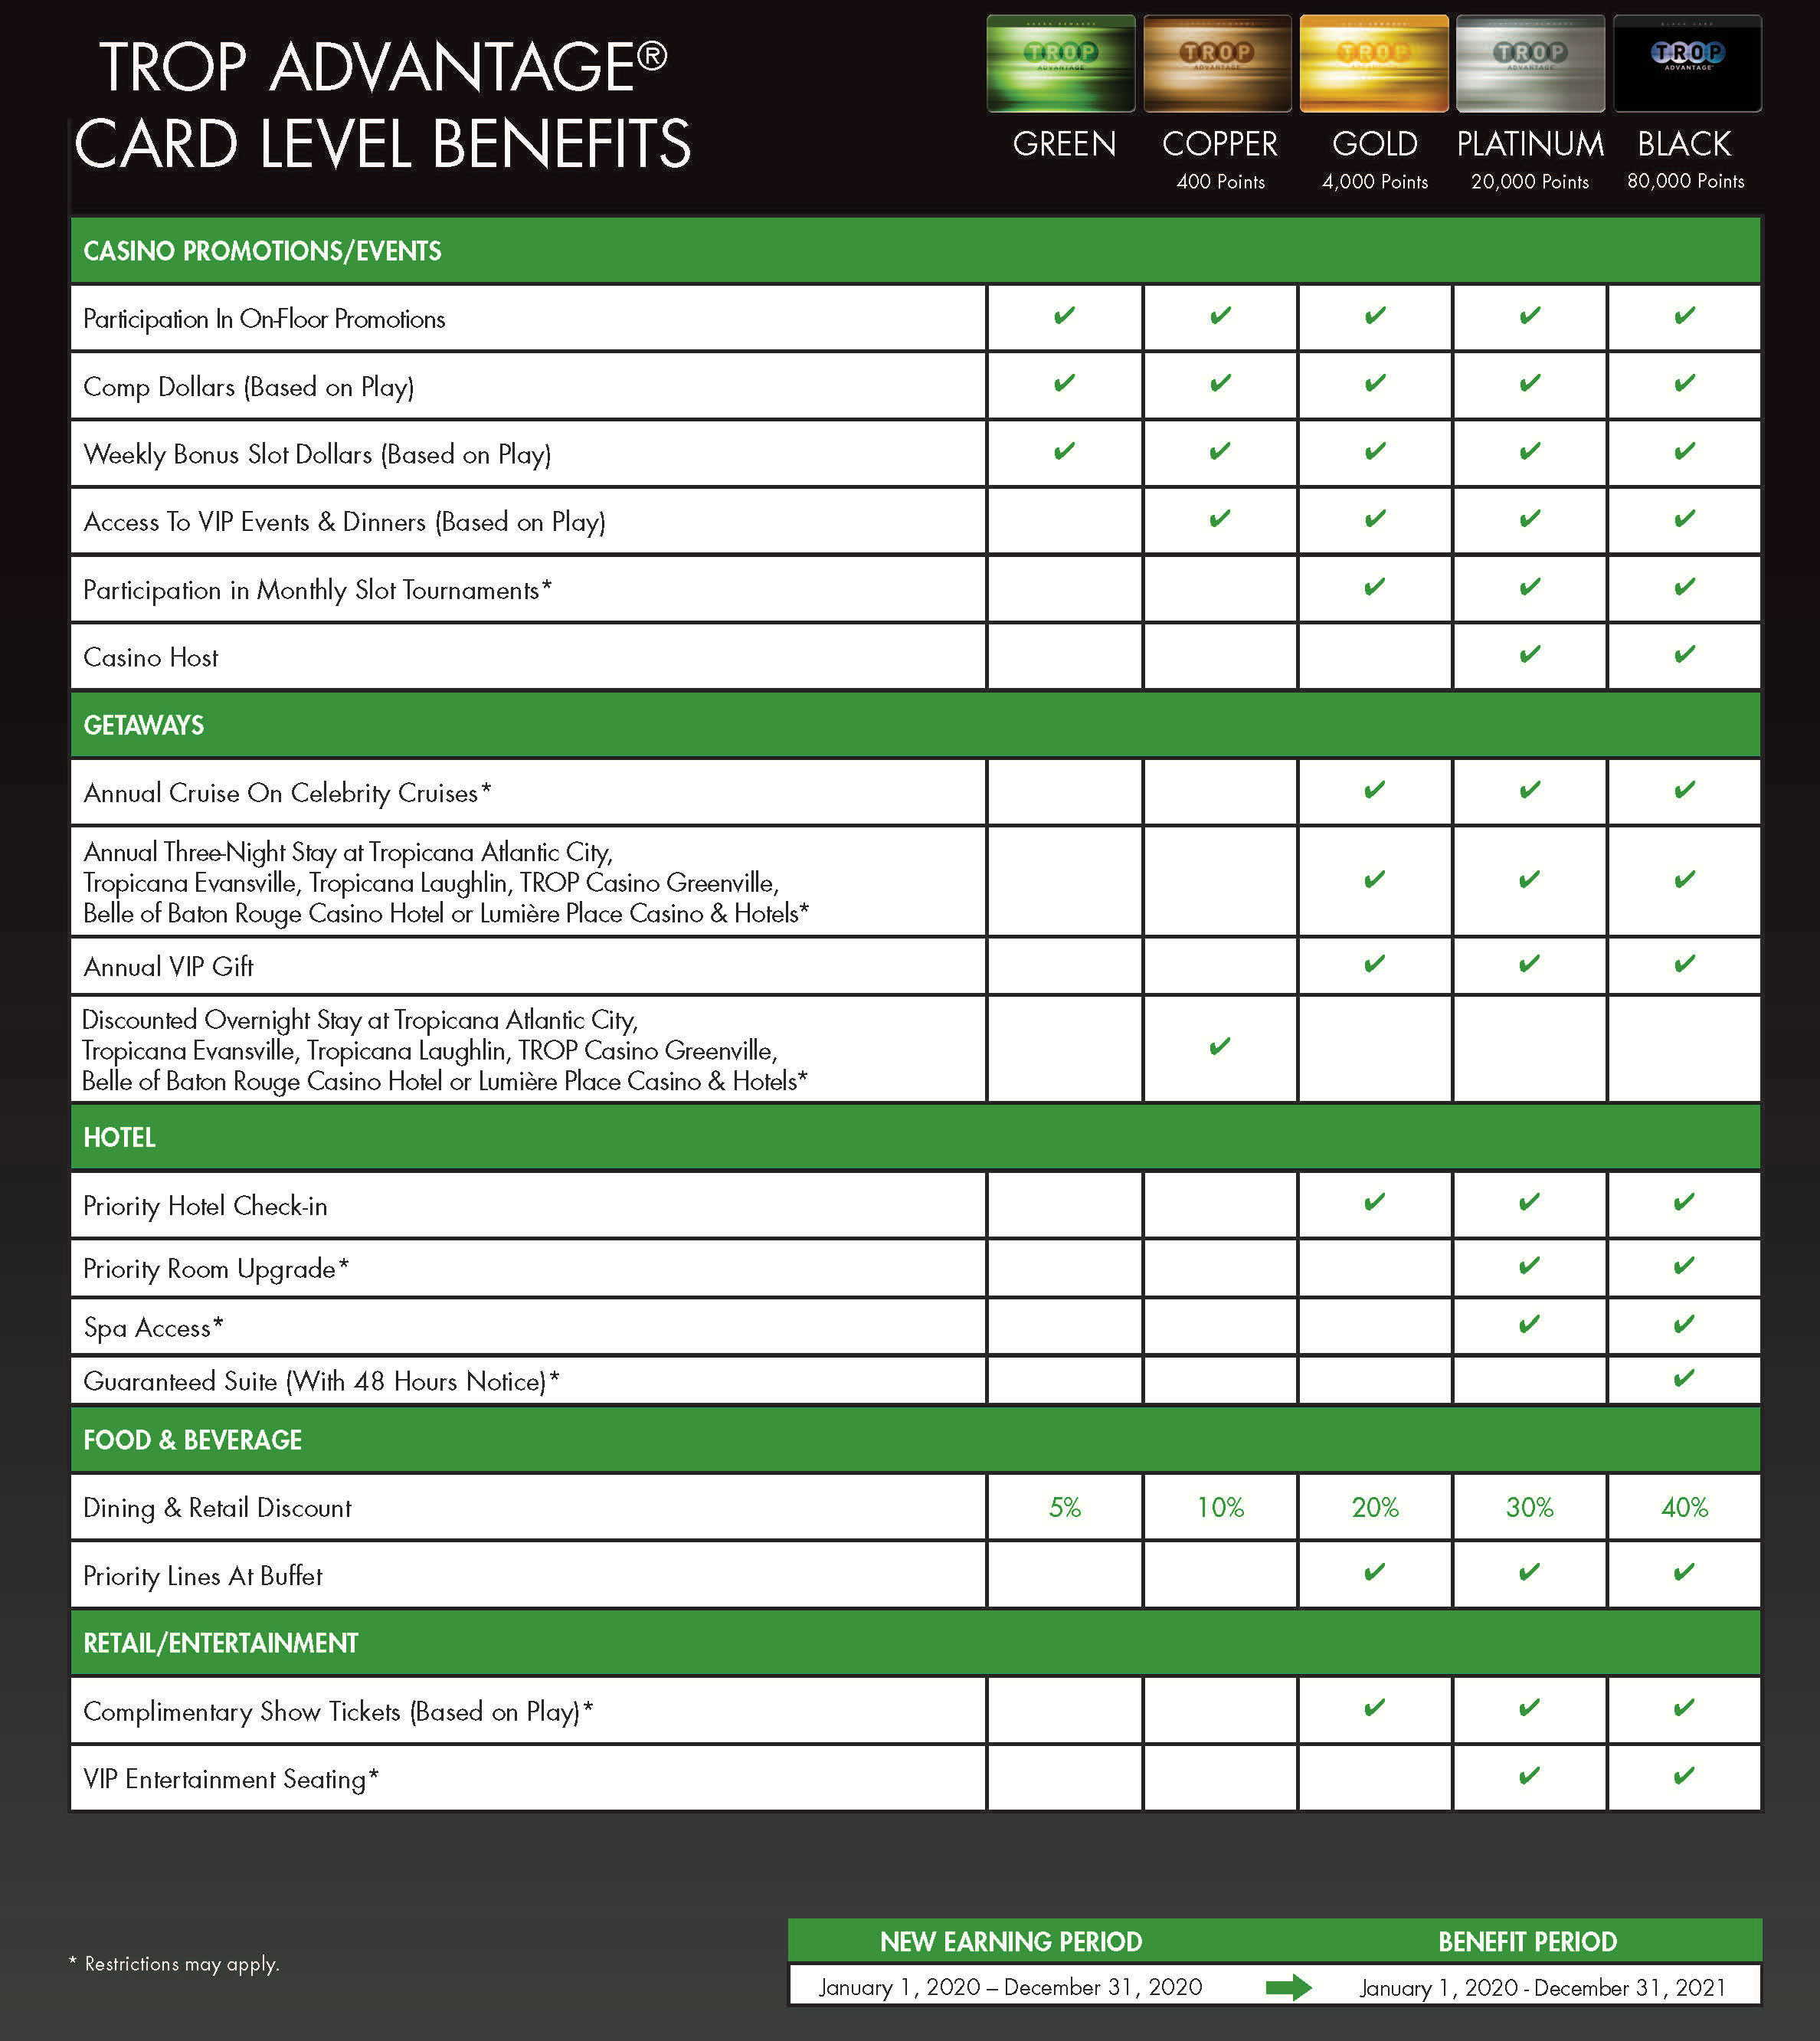 2019-2020 Card Benefit Brochure Chart